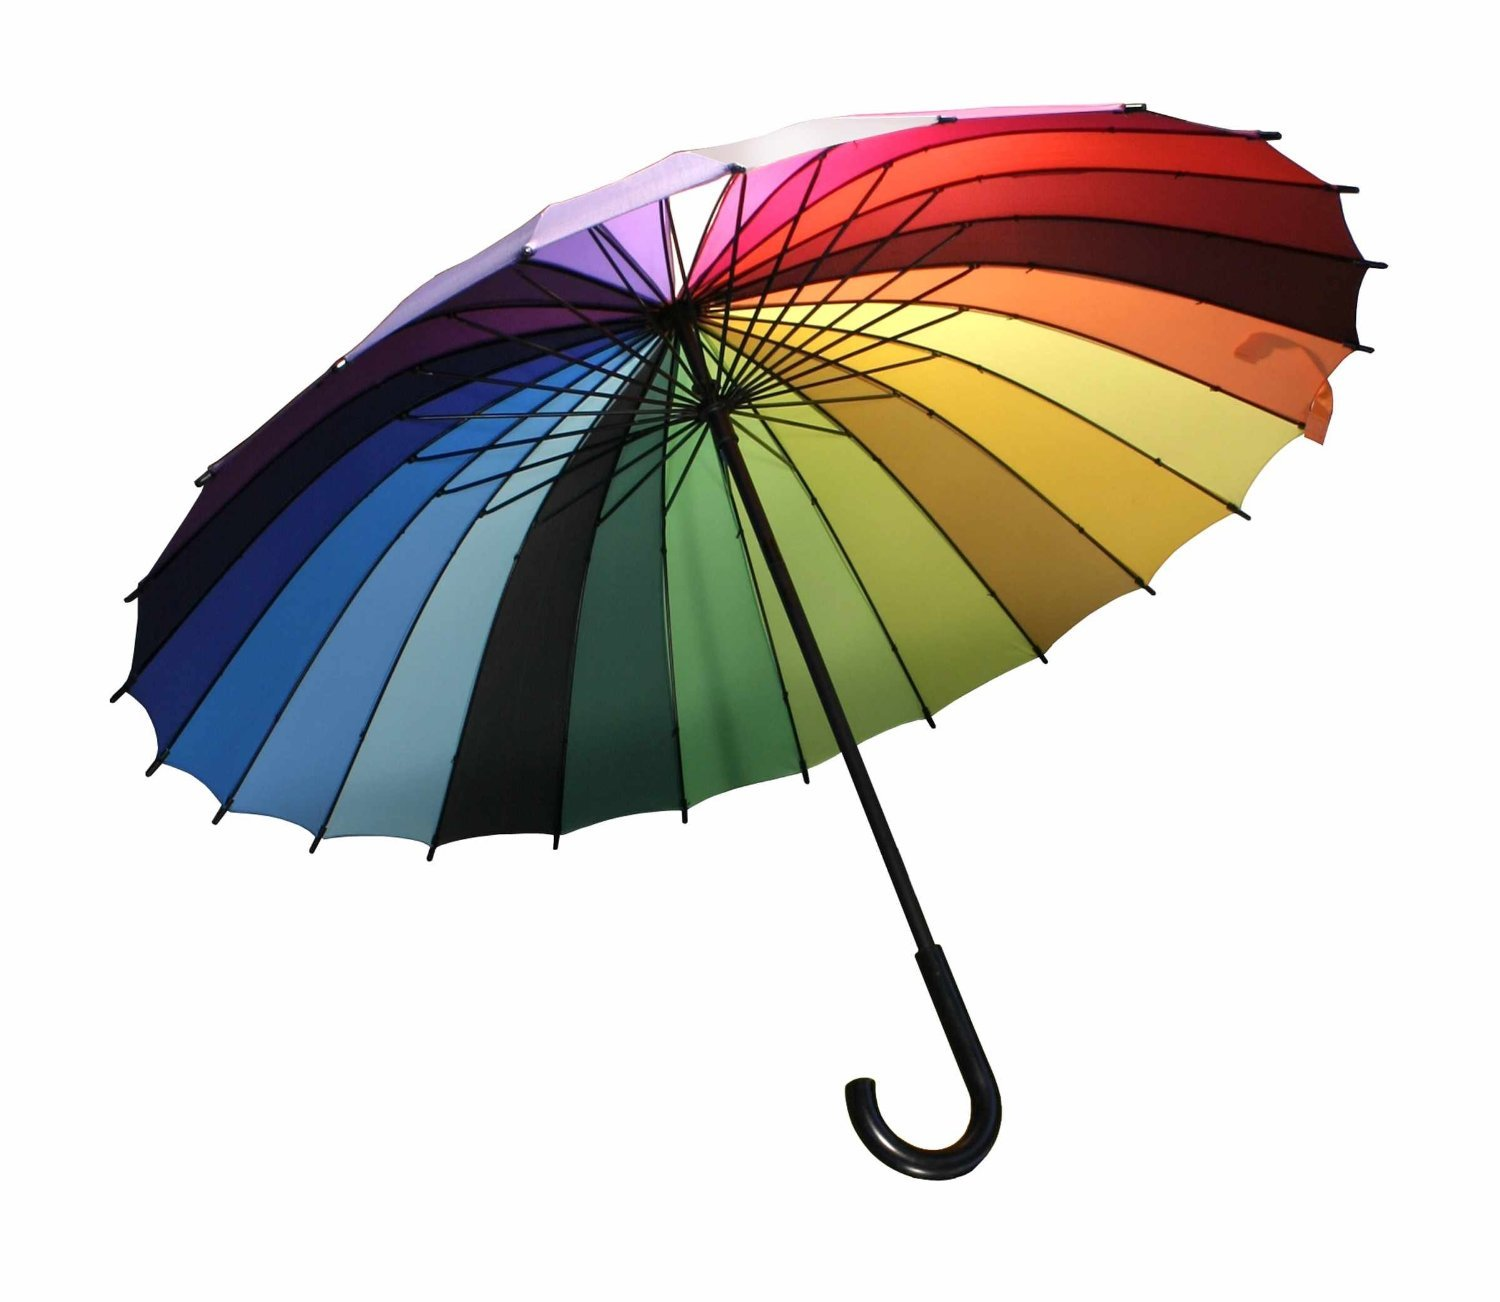 Amazon.com: Streamline Rainbow Color Wheel Umbrella: Patio, Lawn ...